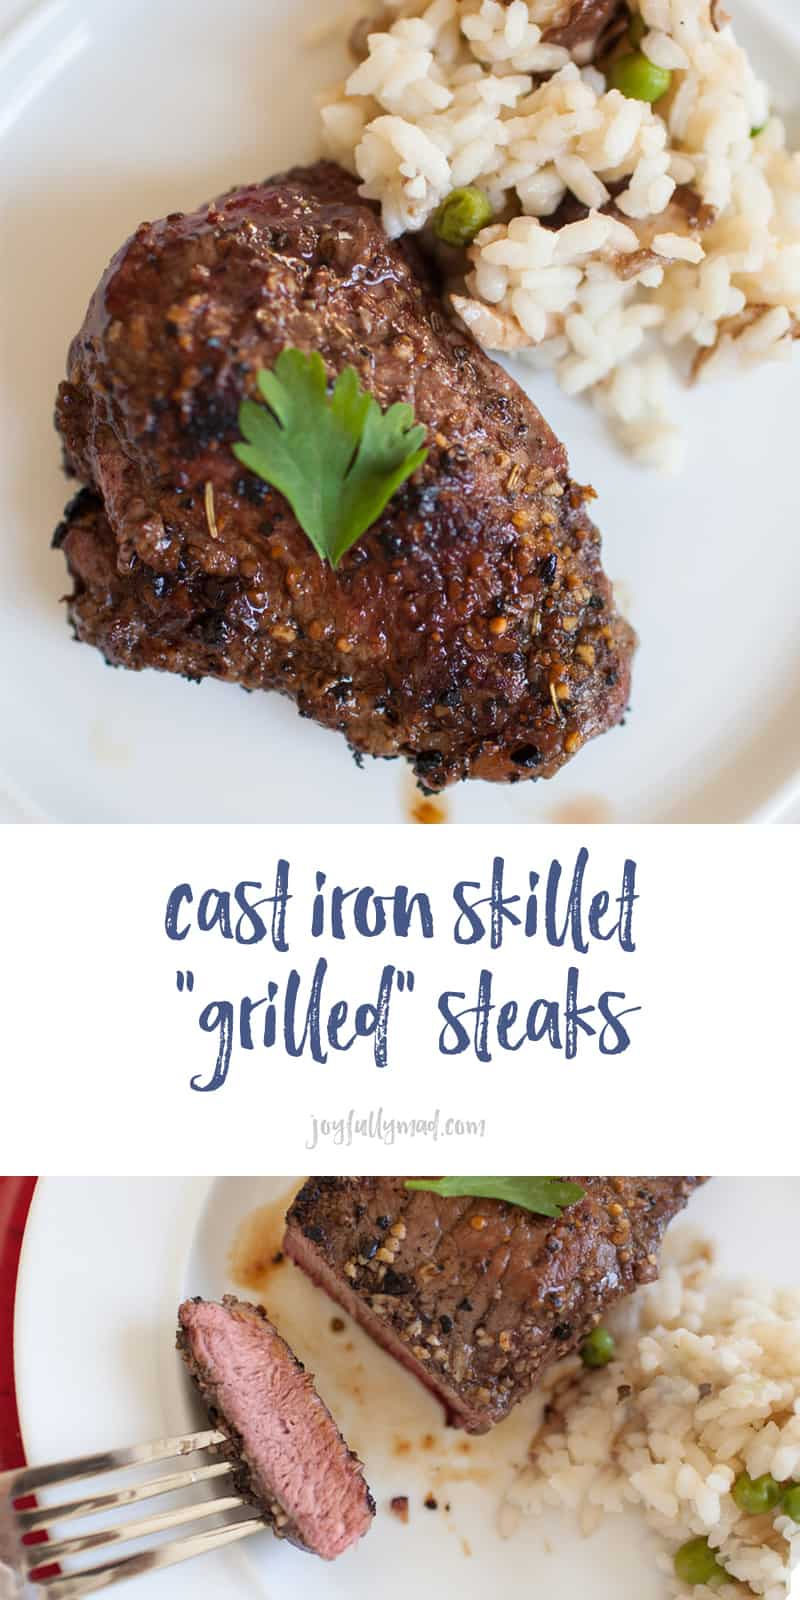 These Cast Iron Skillet Grilled Steaks Are So Simple To Make And A Perfect  Way To Cast Iron Cooking Salmon Recipe Enjoy A Healthy